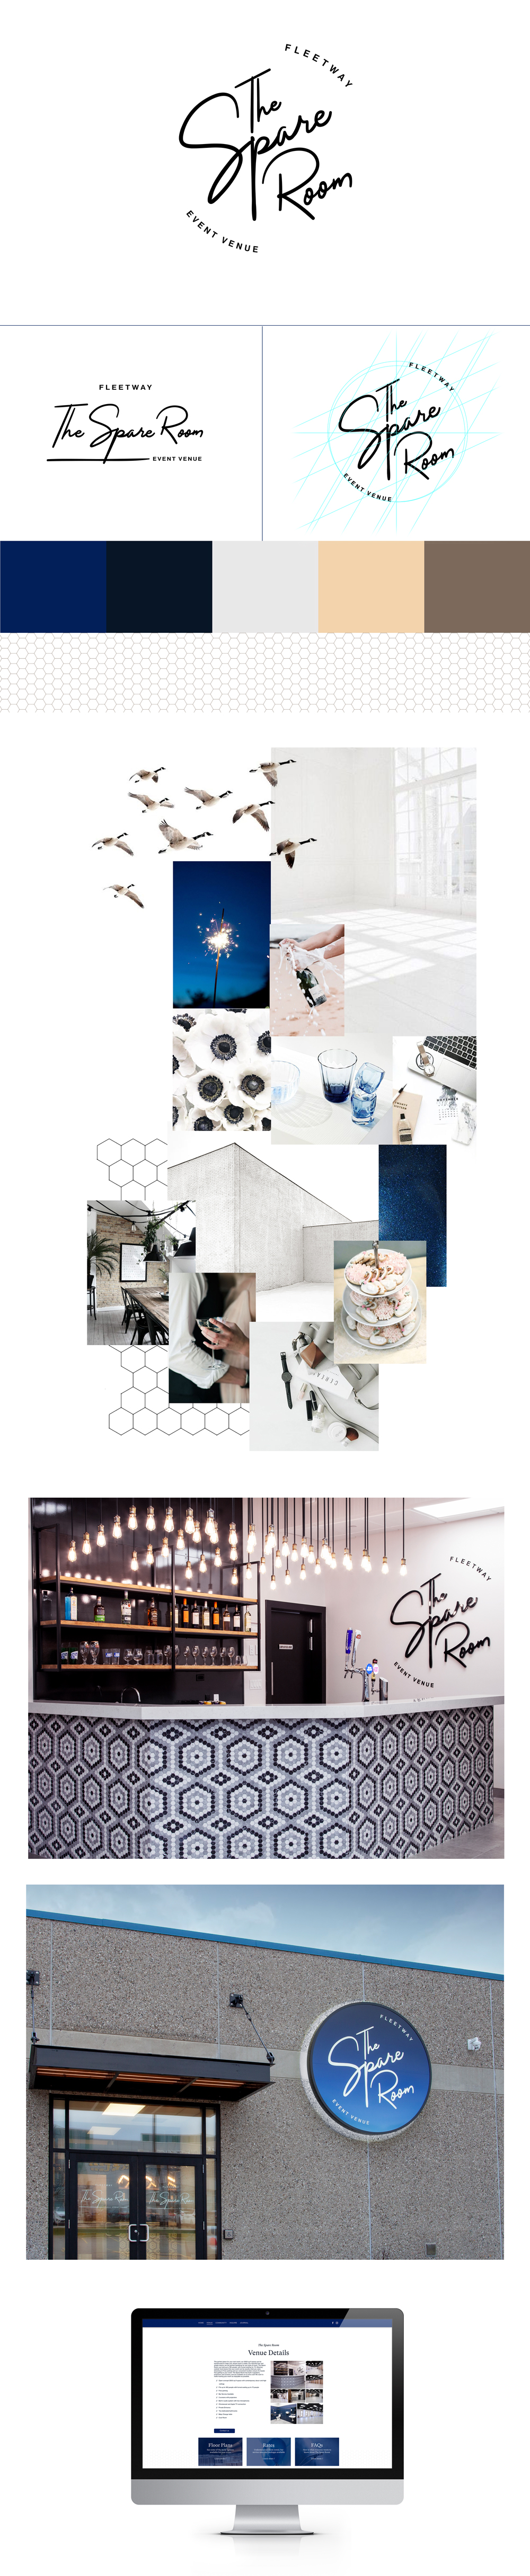 The Spare Room Branding Overview